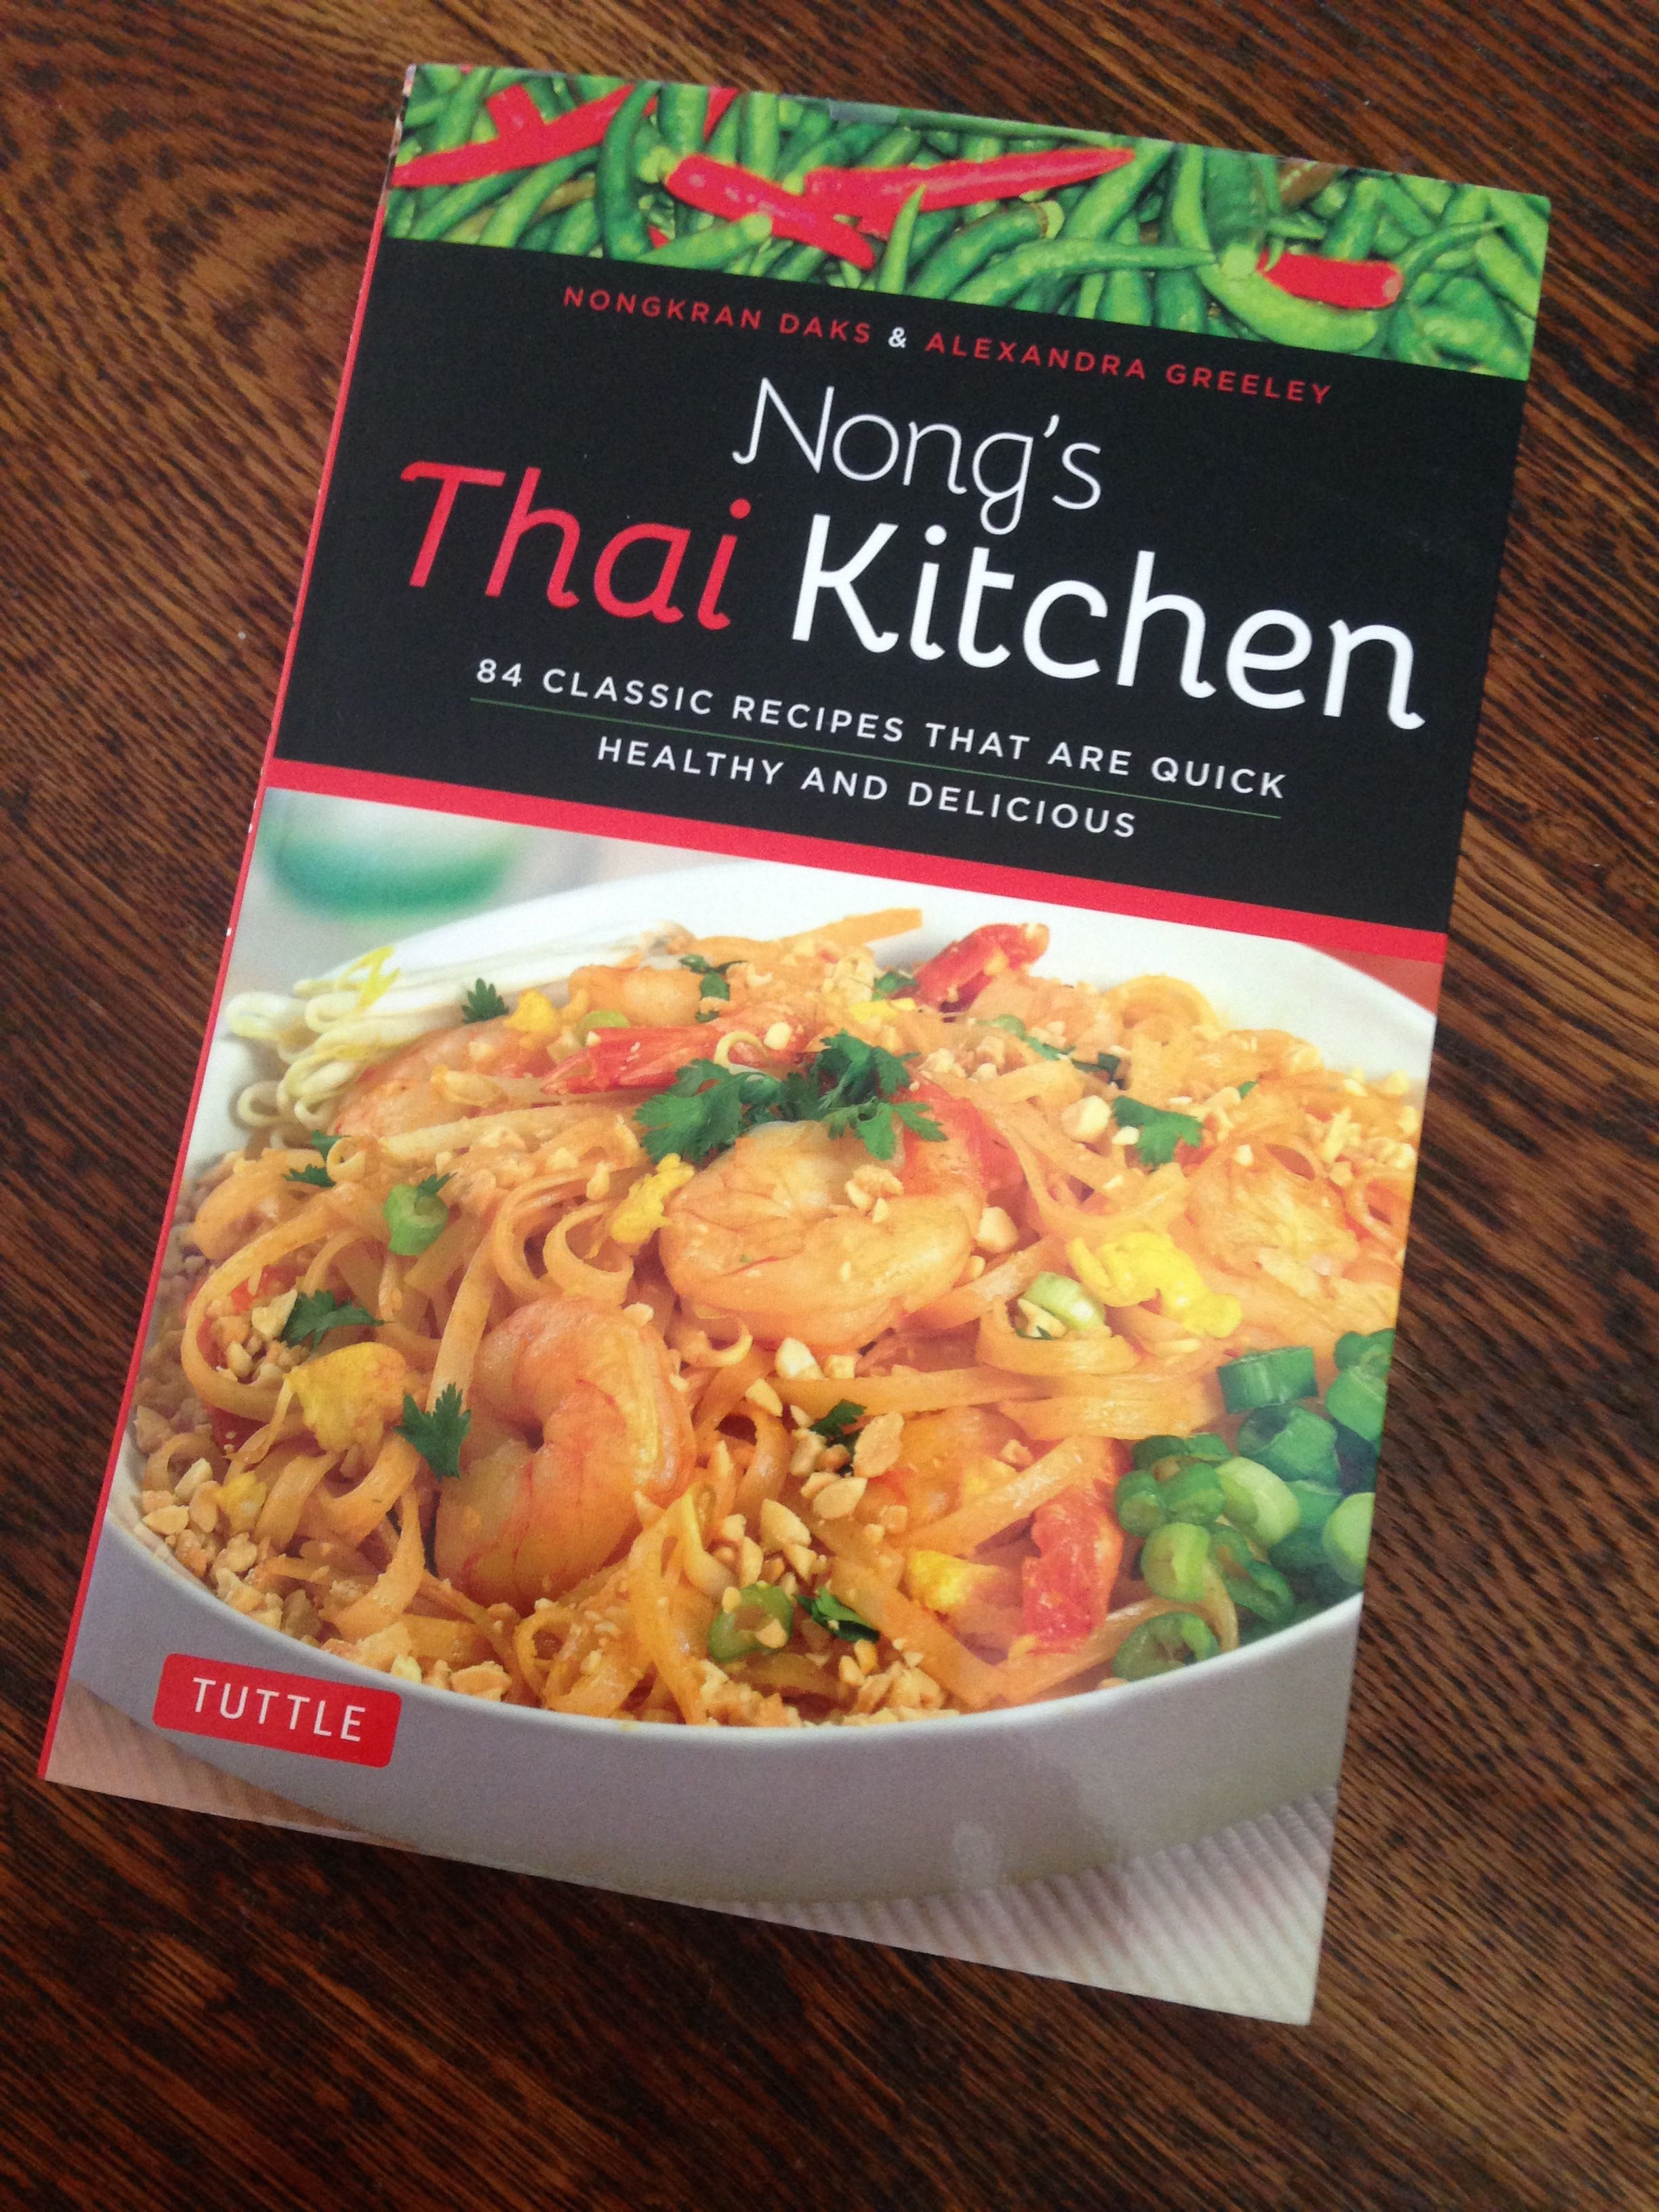 Meet Me In Nong S Thai Kitchen Dc Area Cookbook Event At